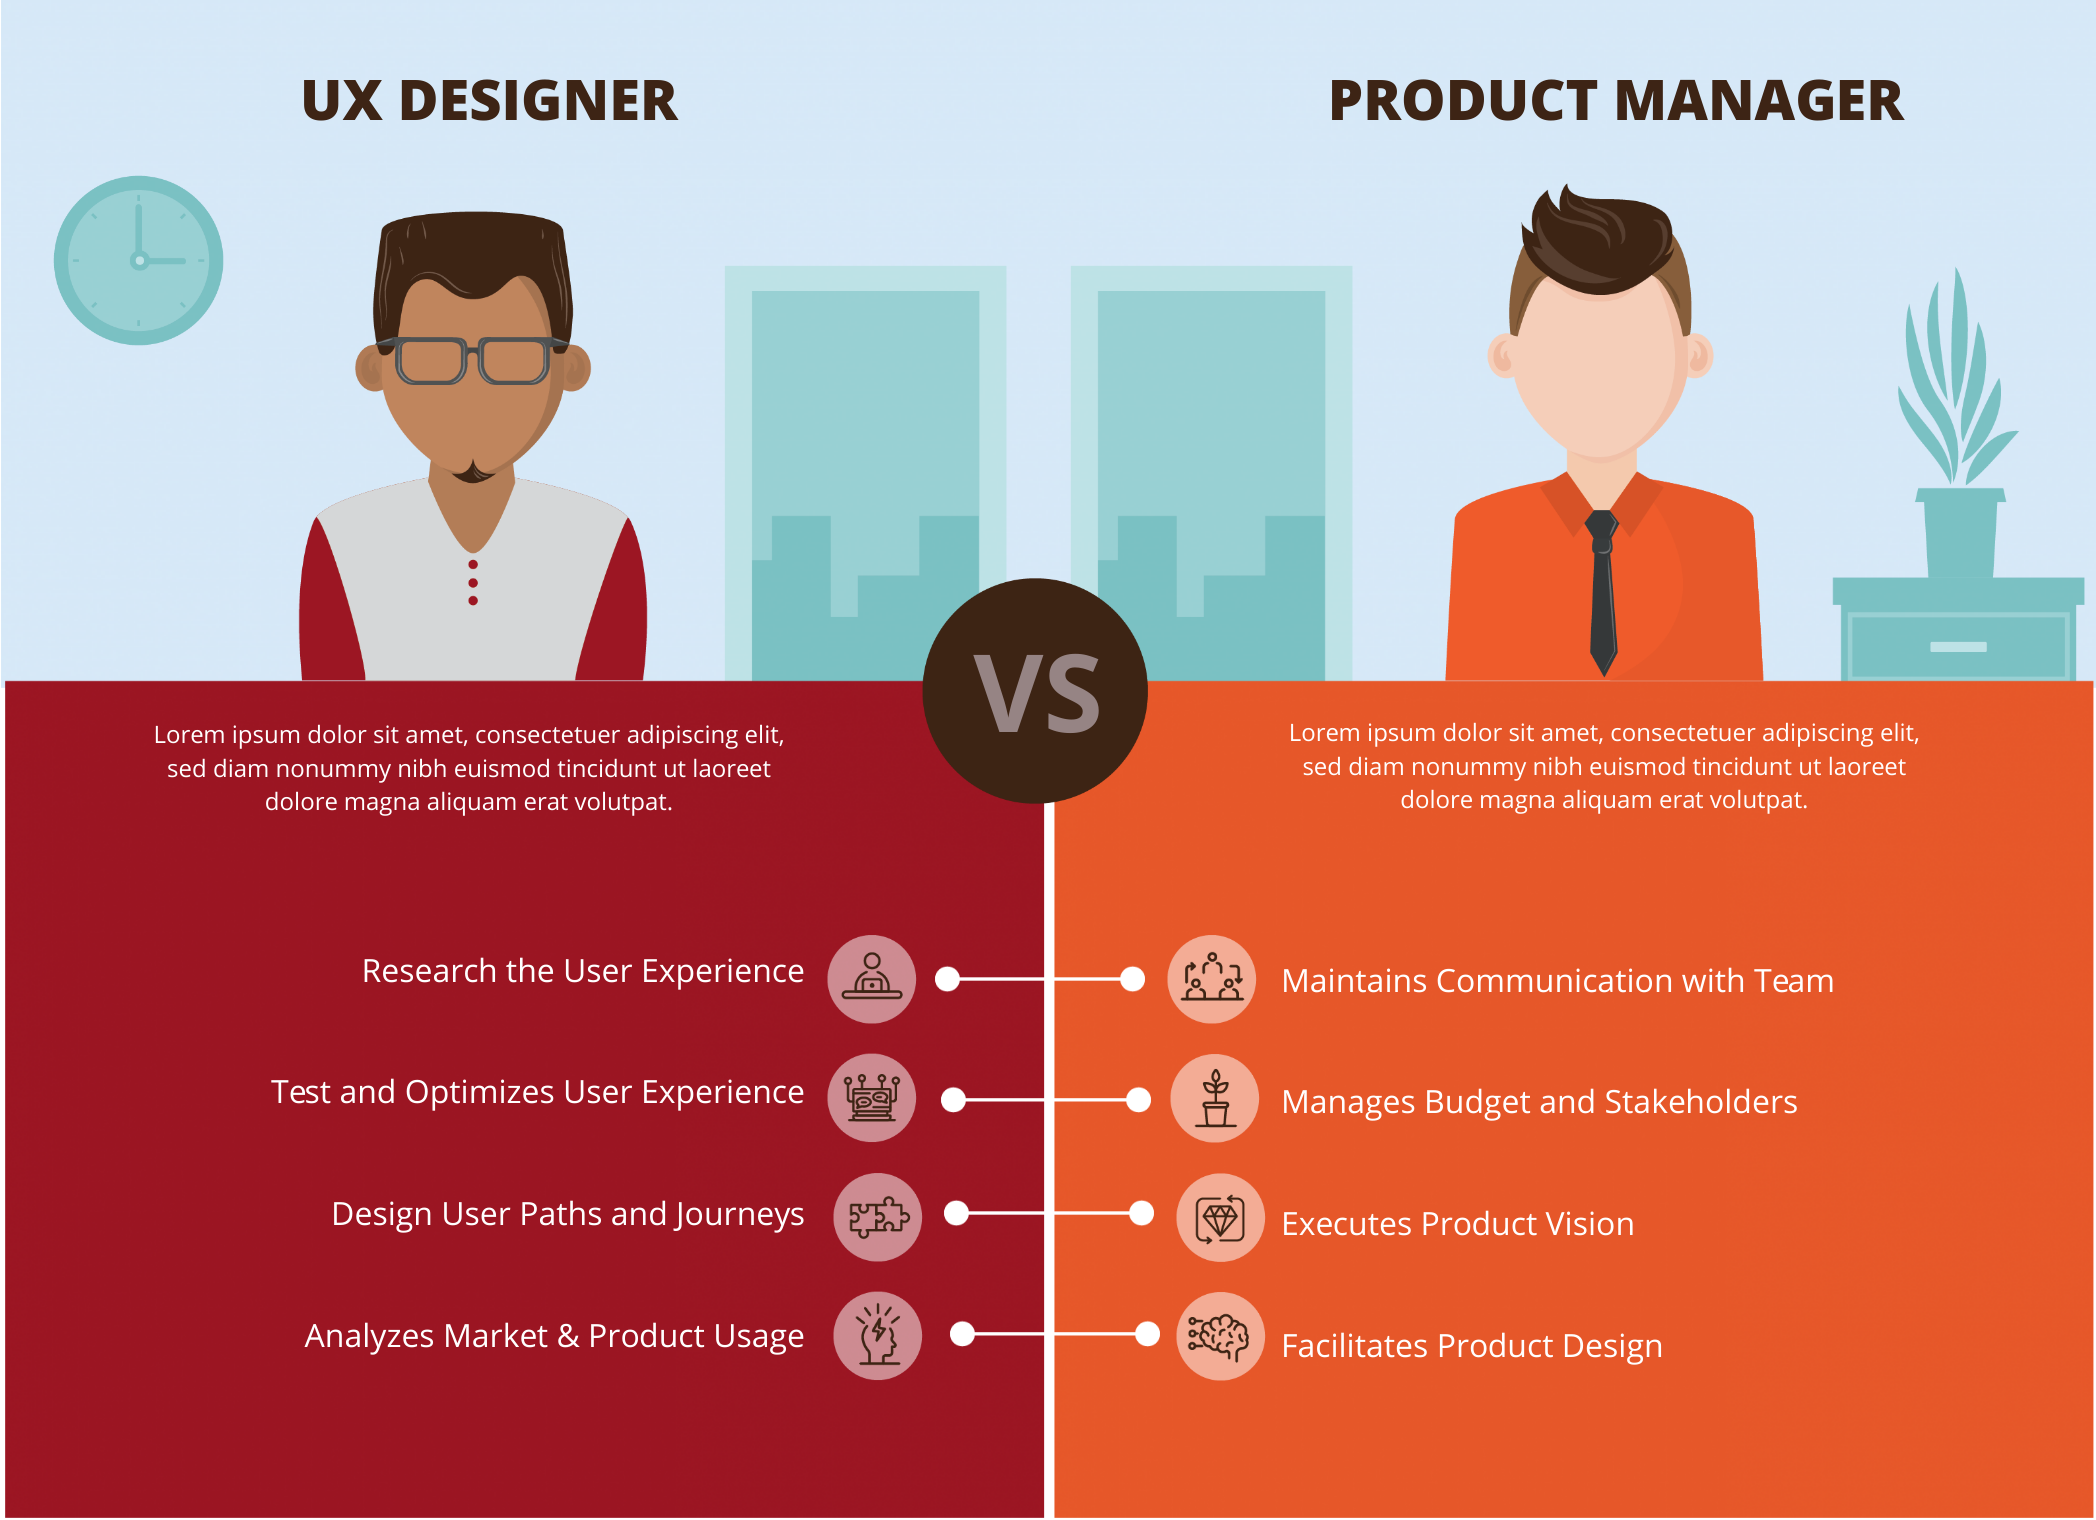 an infographic comparing the role of a ux designer and a product manager